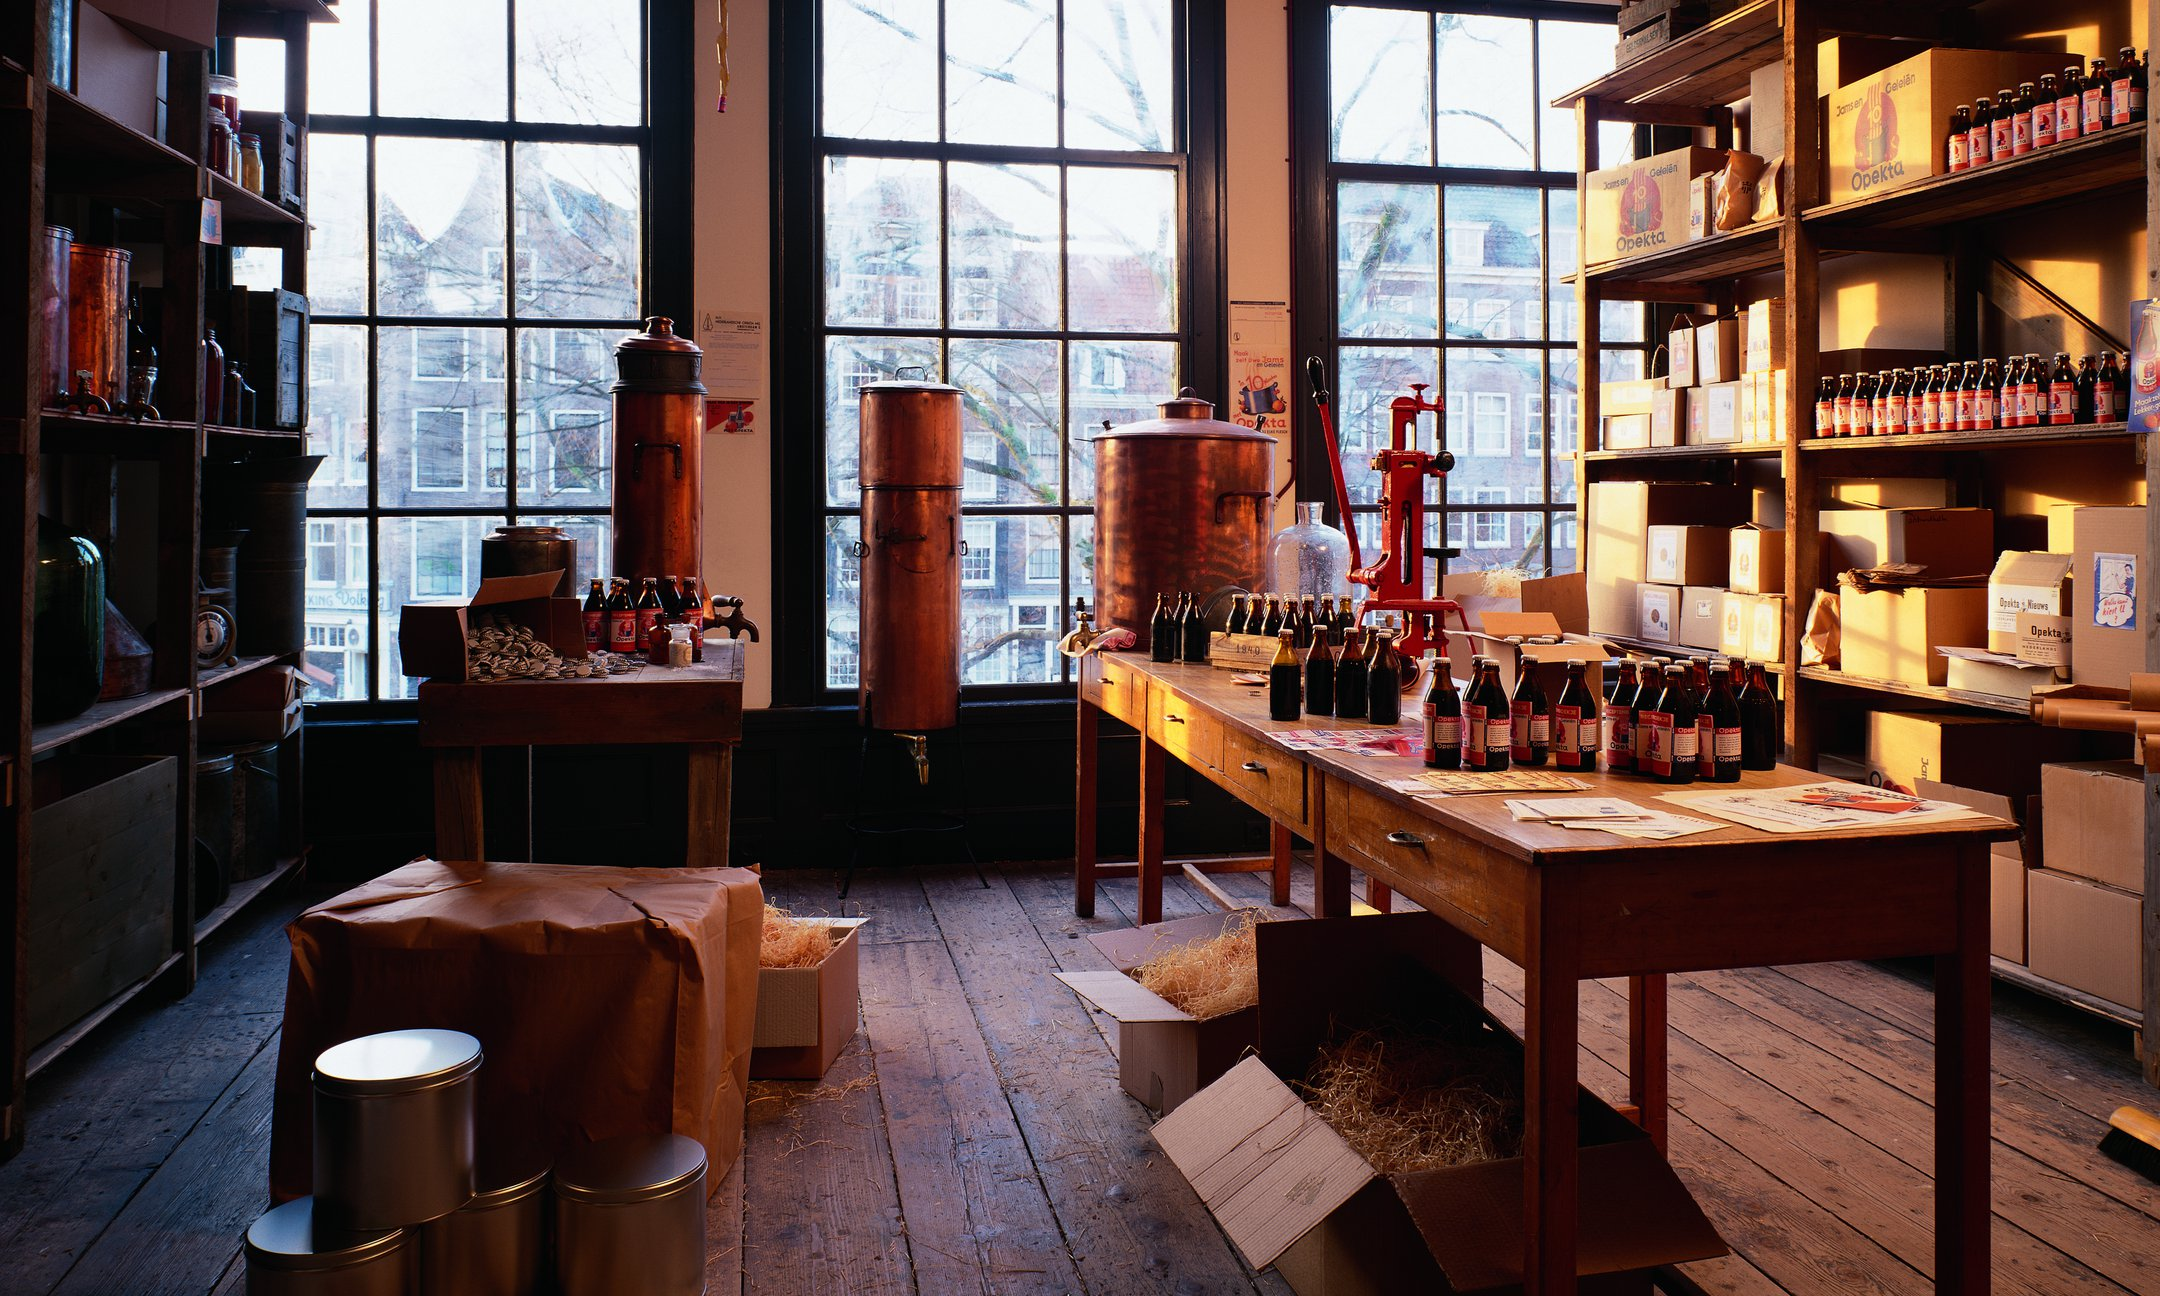 The storeroom on the second floor of the main house (reconstruction, 1999).